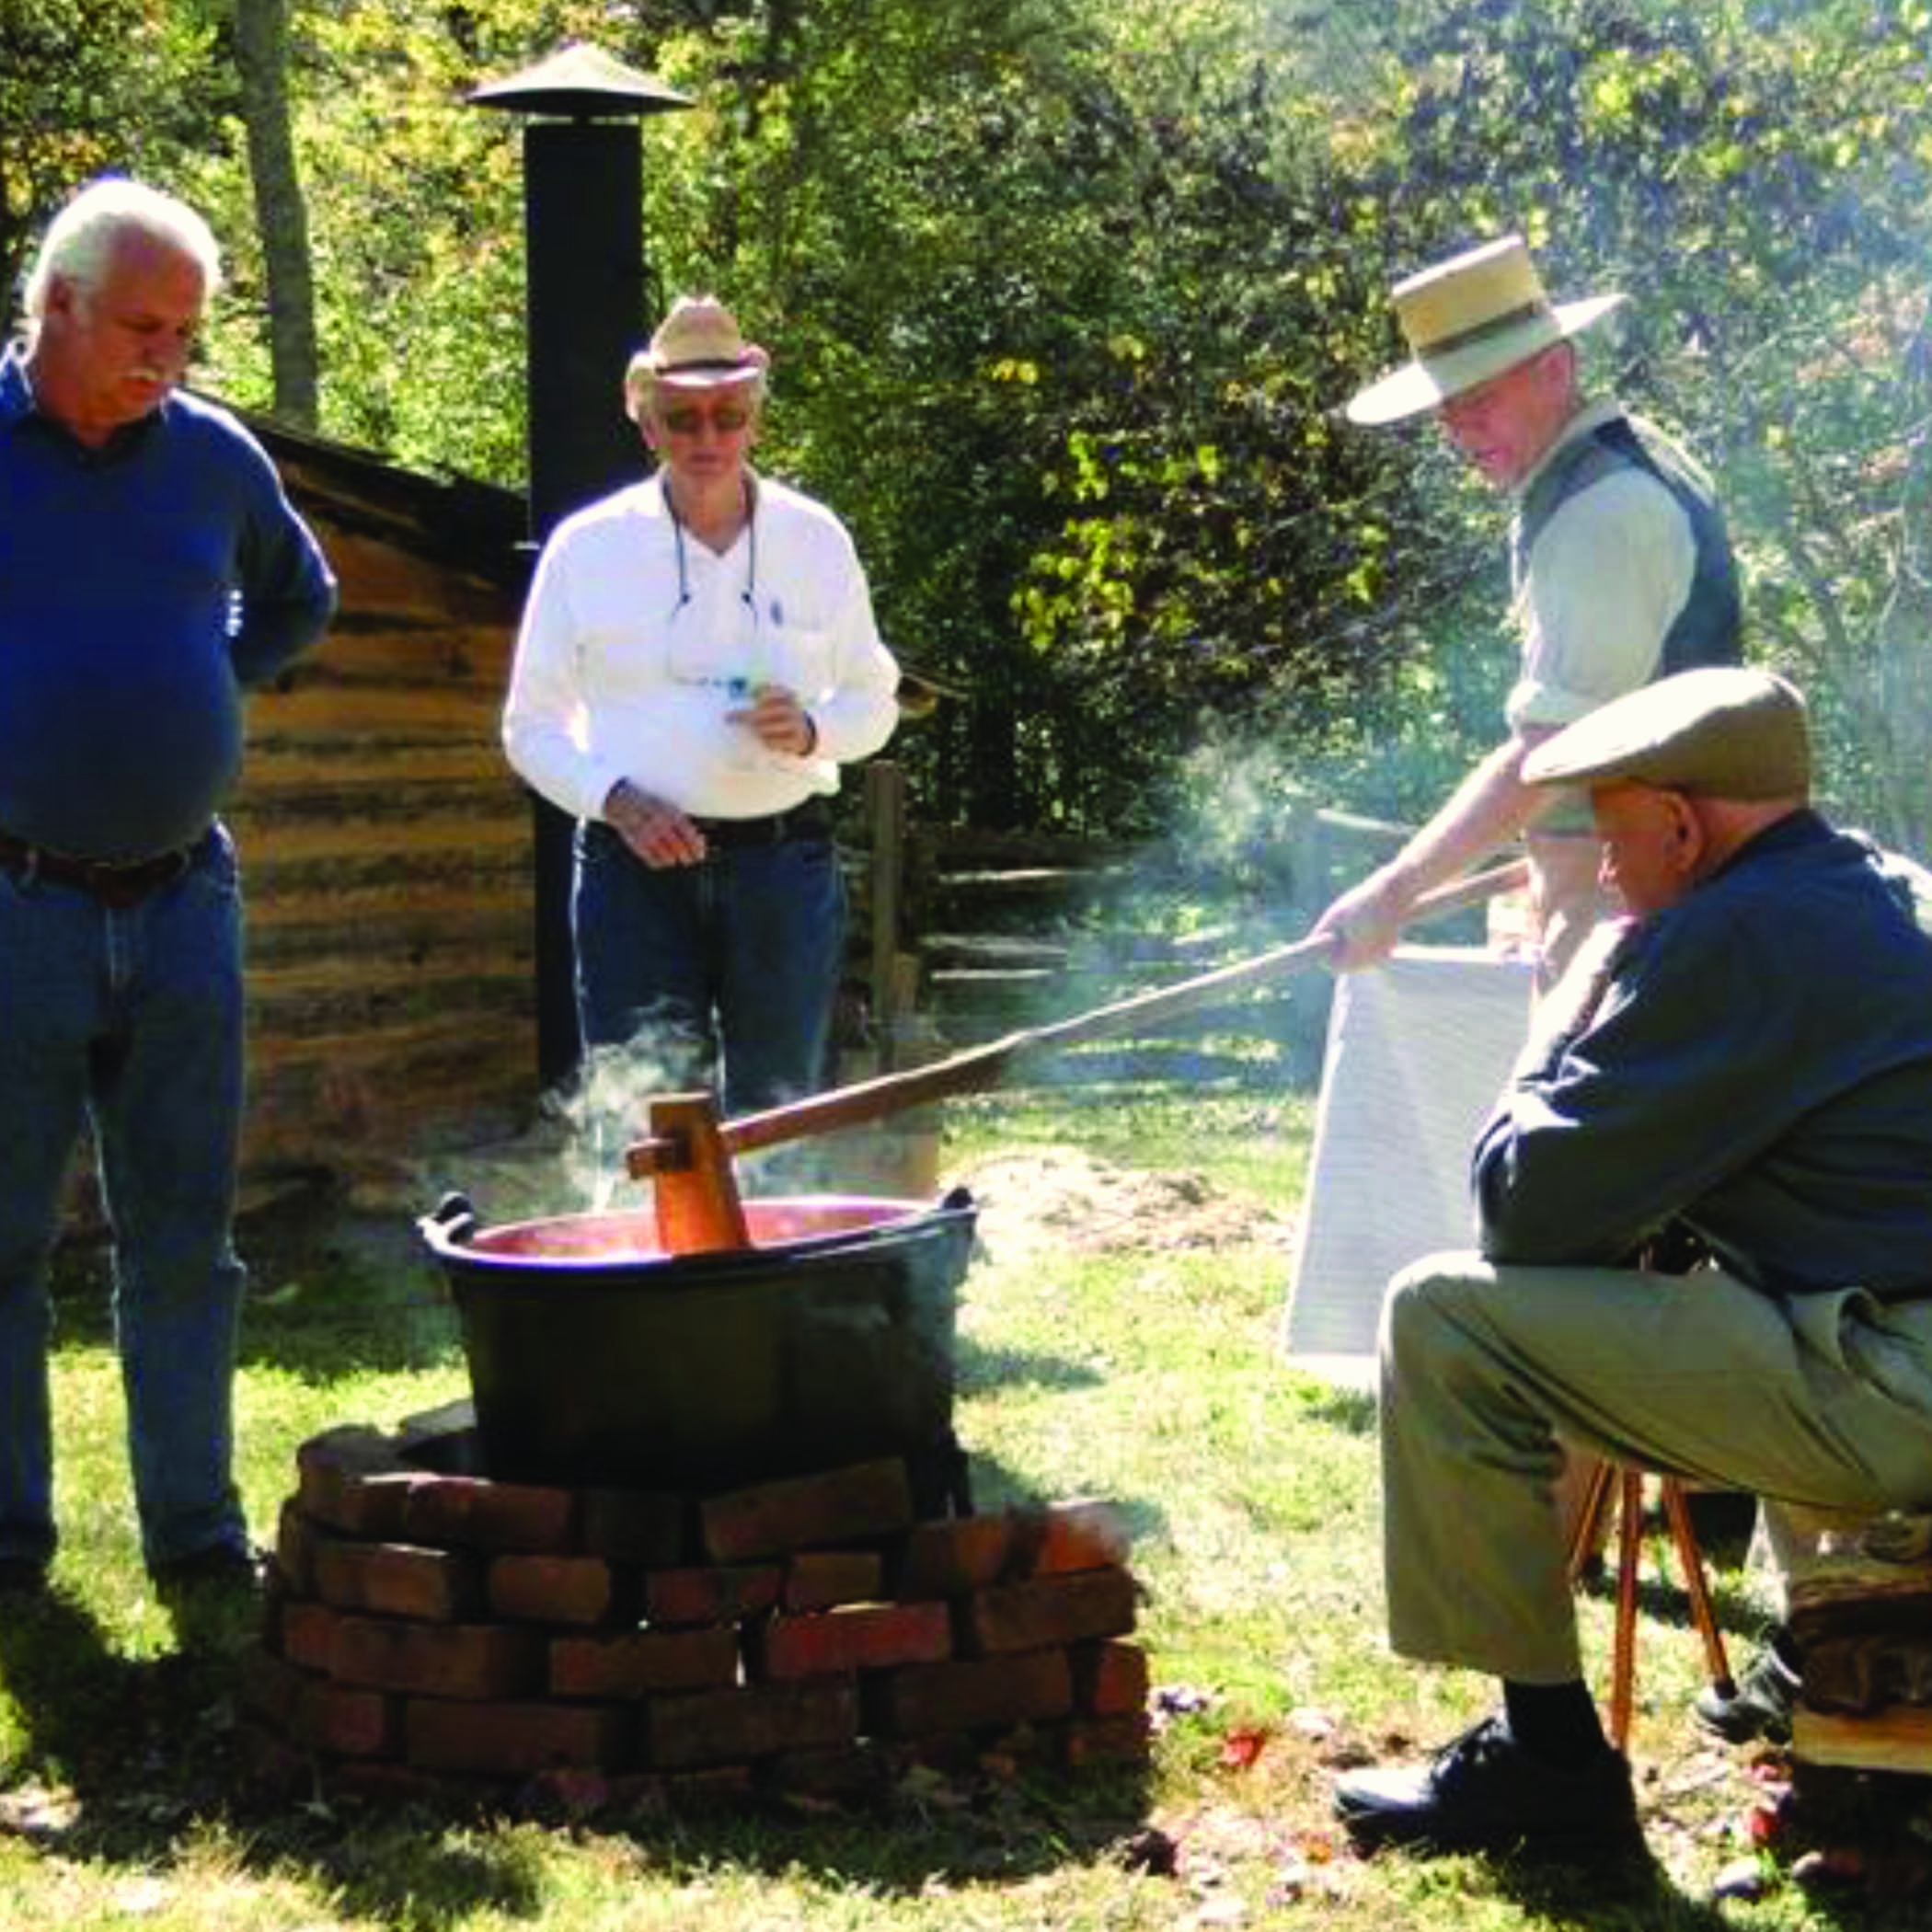 a man outside by a wood fire, stirring a pot of apple butter with a paddle. He is surrounded by onlookers